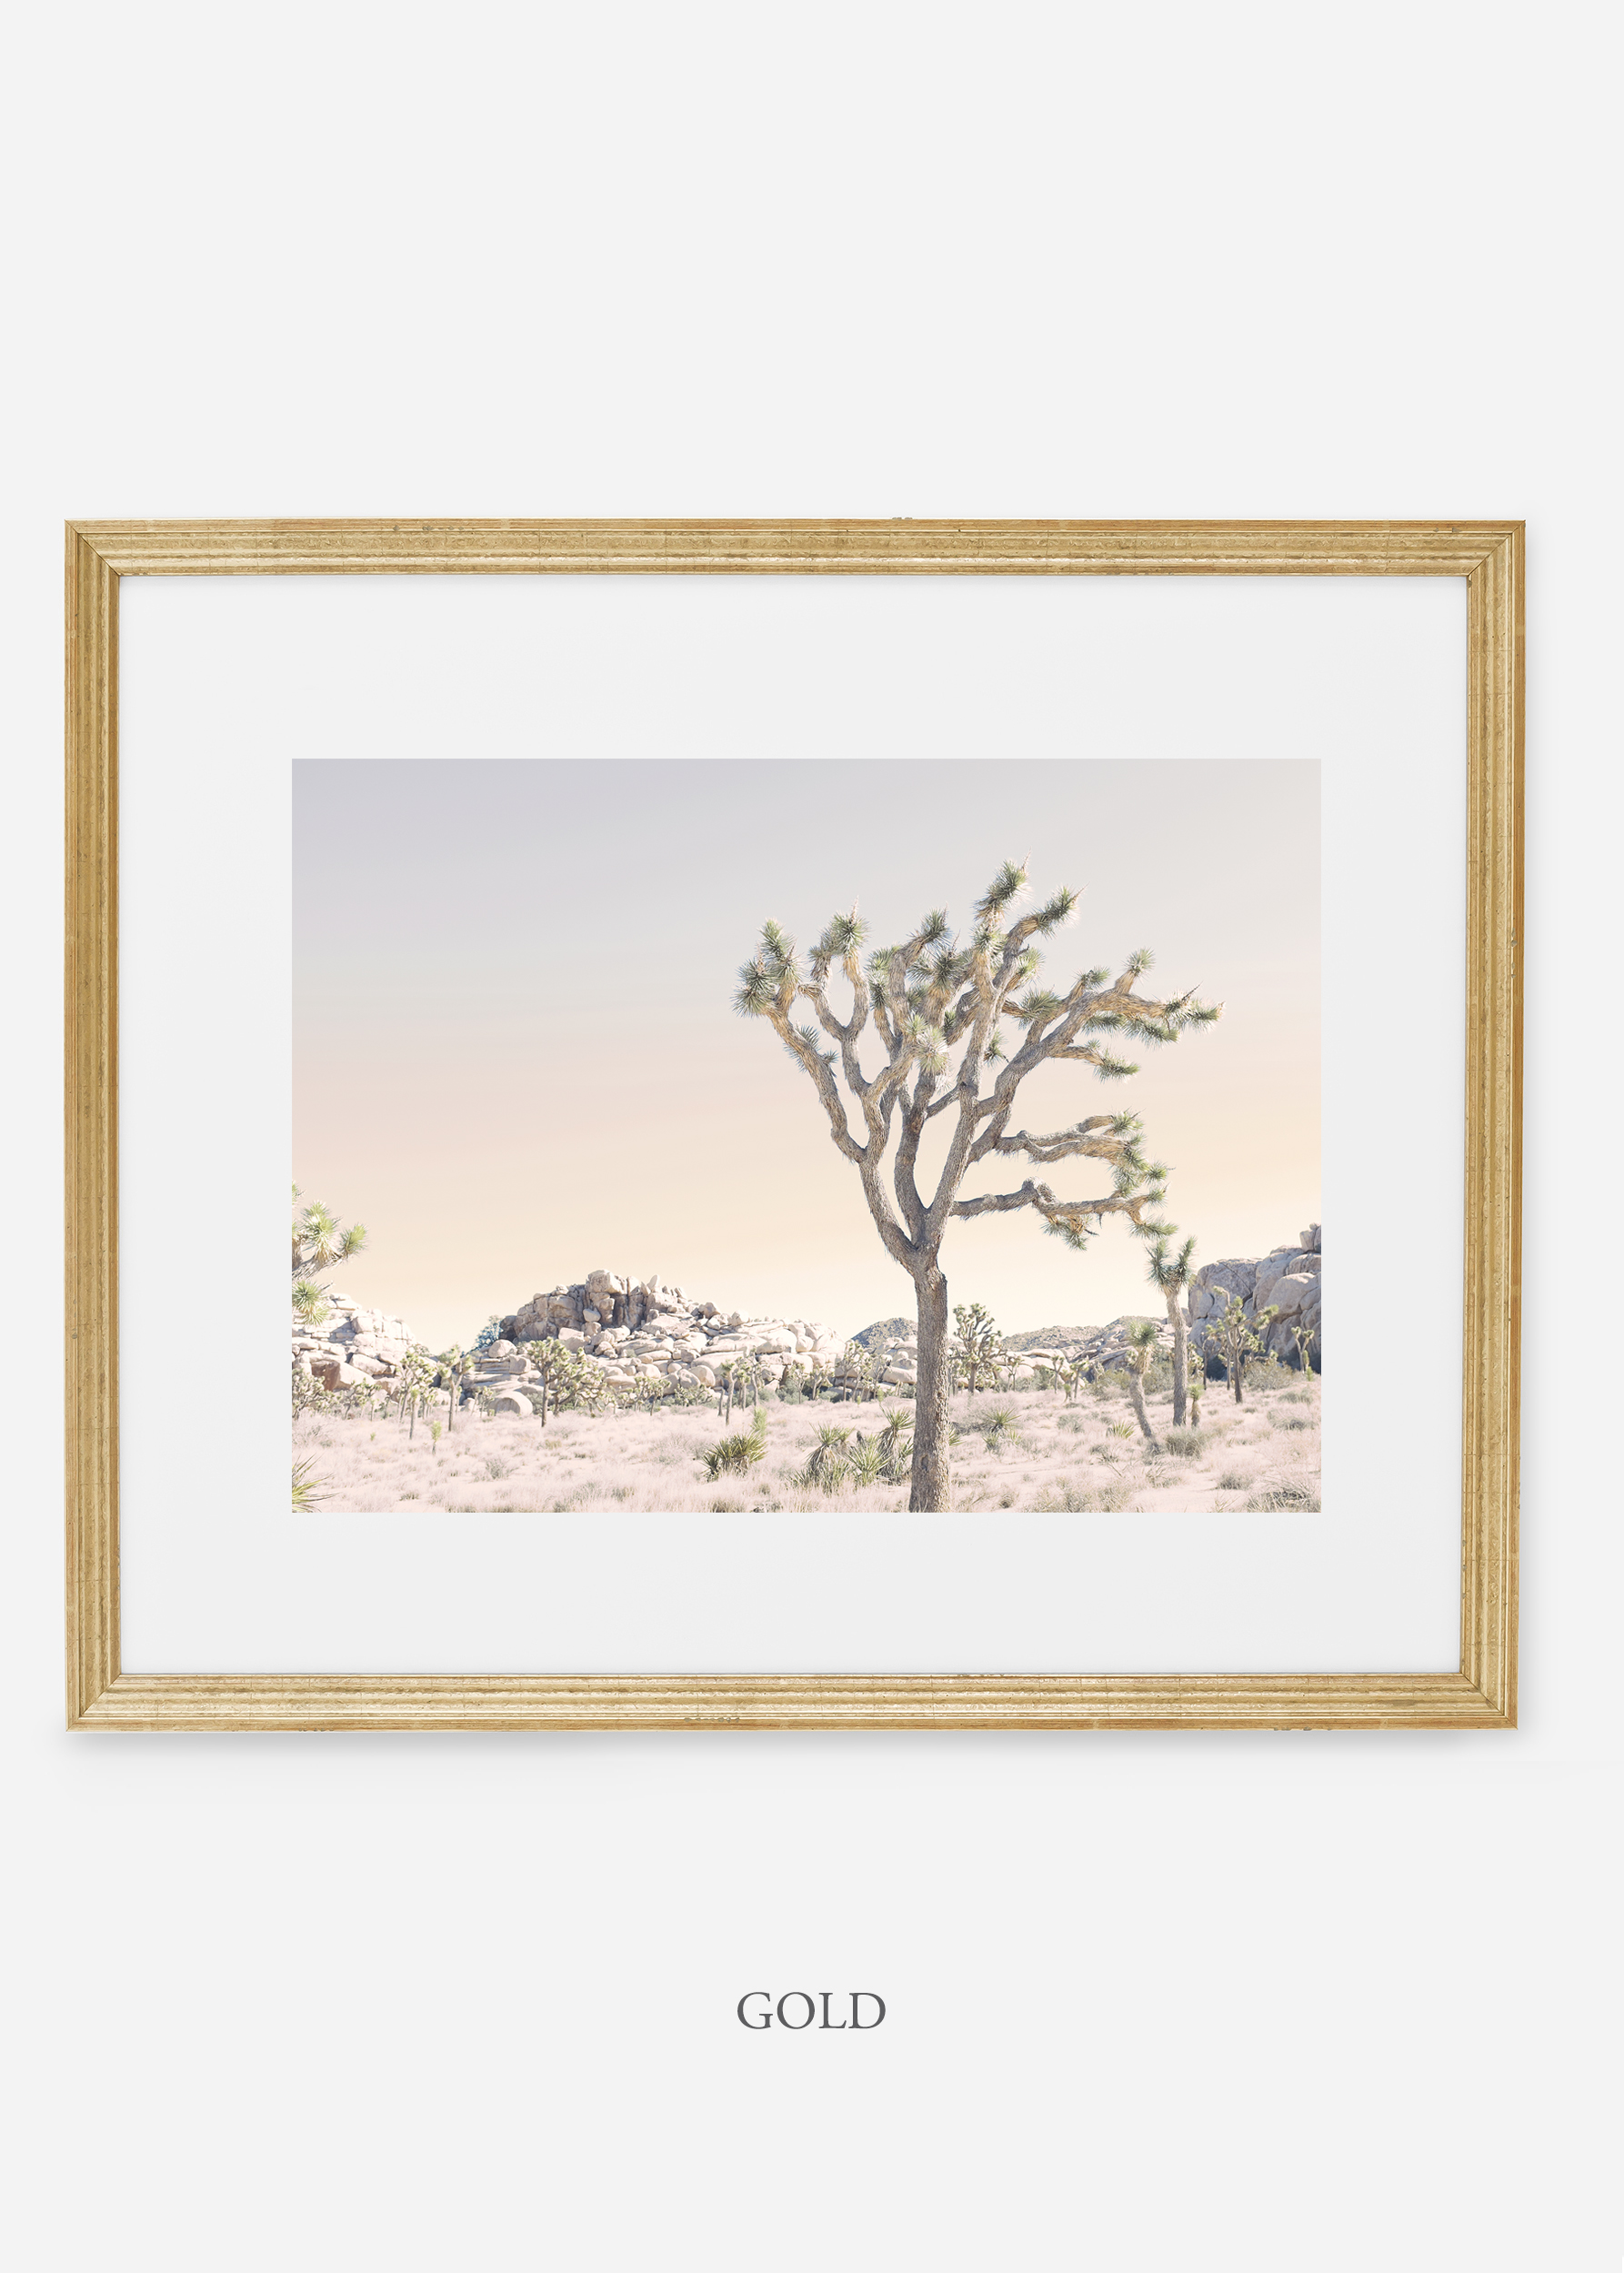 WilderCalifornia_goldframe_JoshuaTree_No.3_interiordesign_prints_art.jpg